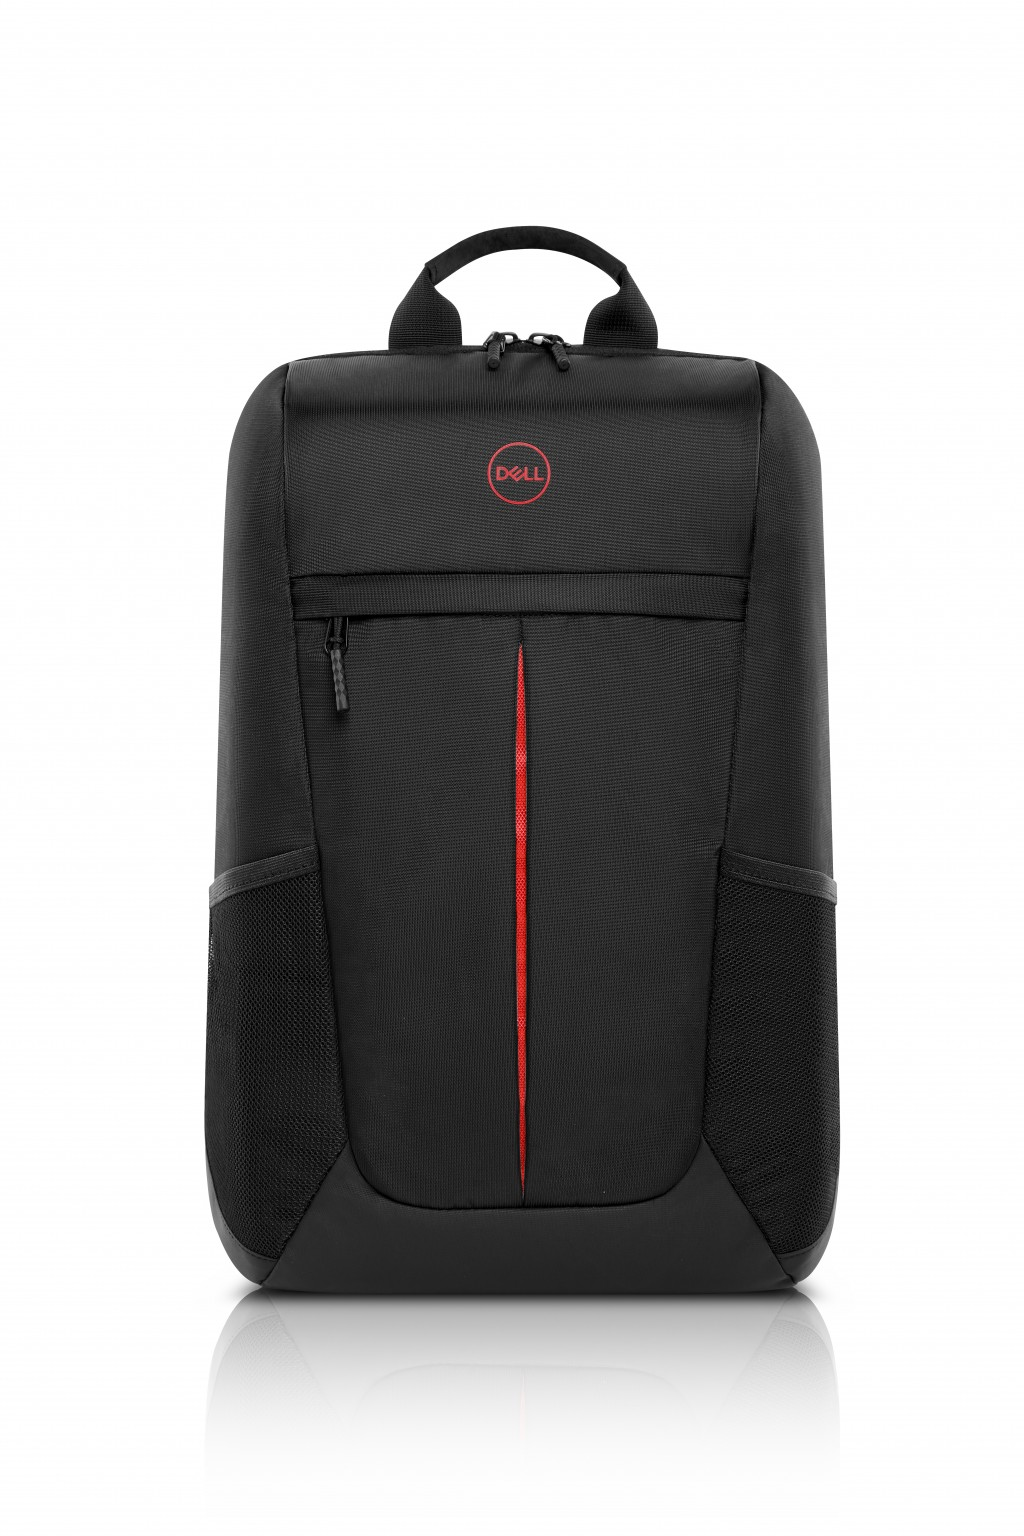 """Dell Gaming Lite 460-BCZB Fits up to size 17 """", Black/Red, Backpack"""